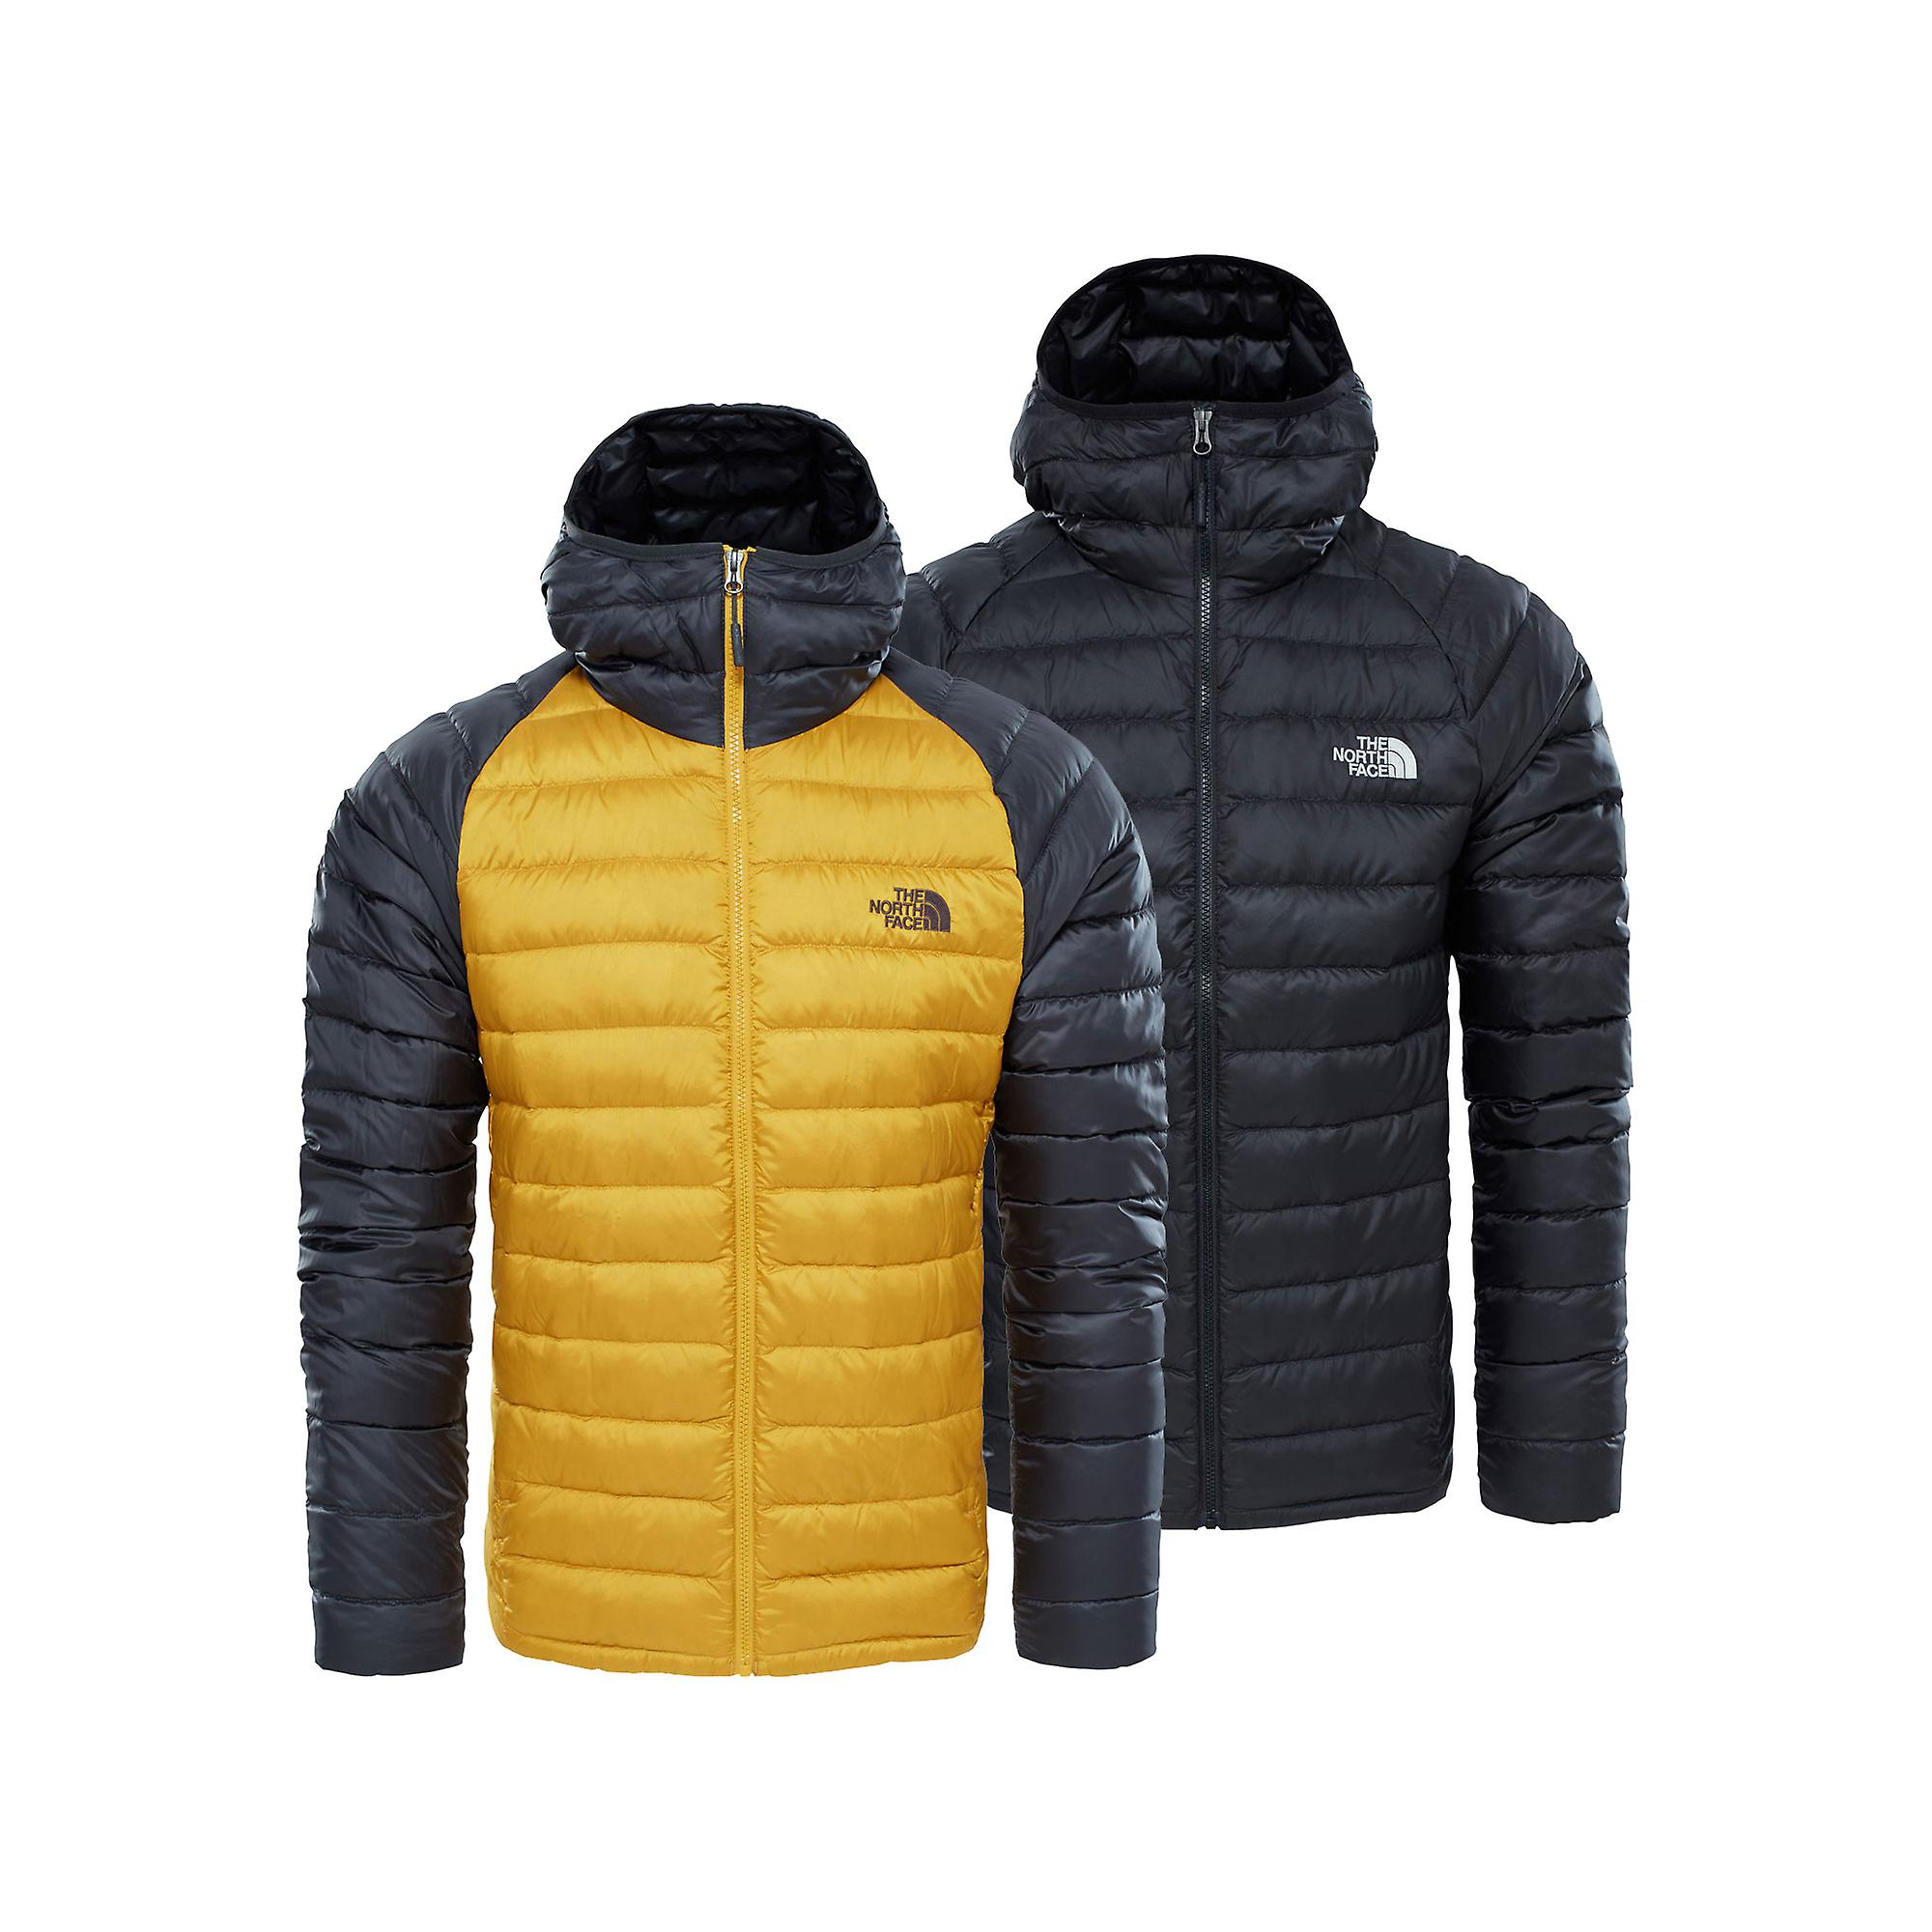 86c881015dd4 The North Face Mens Trevail Hoodie